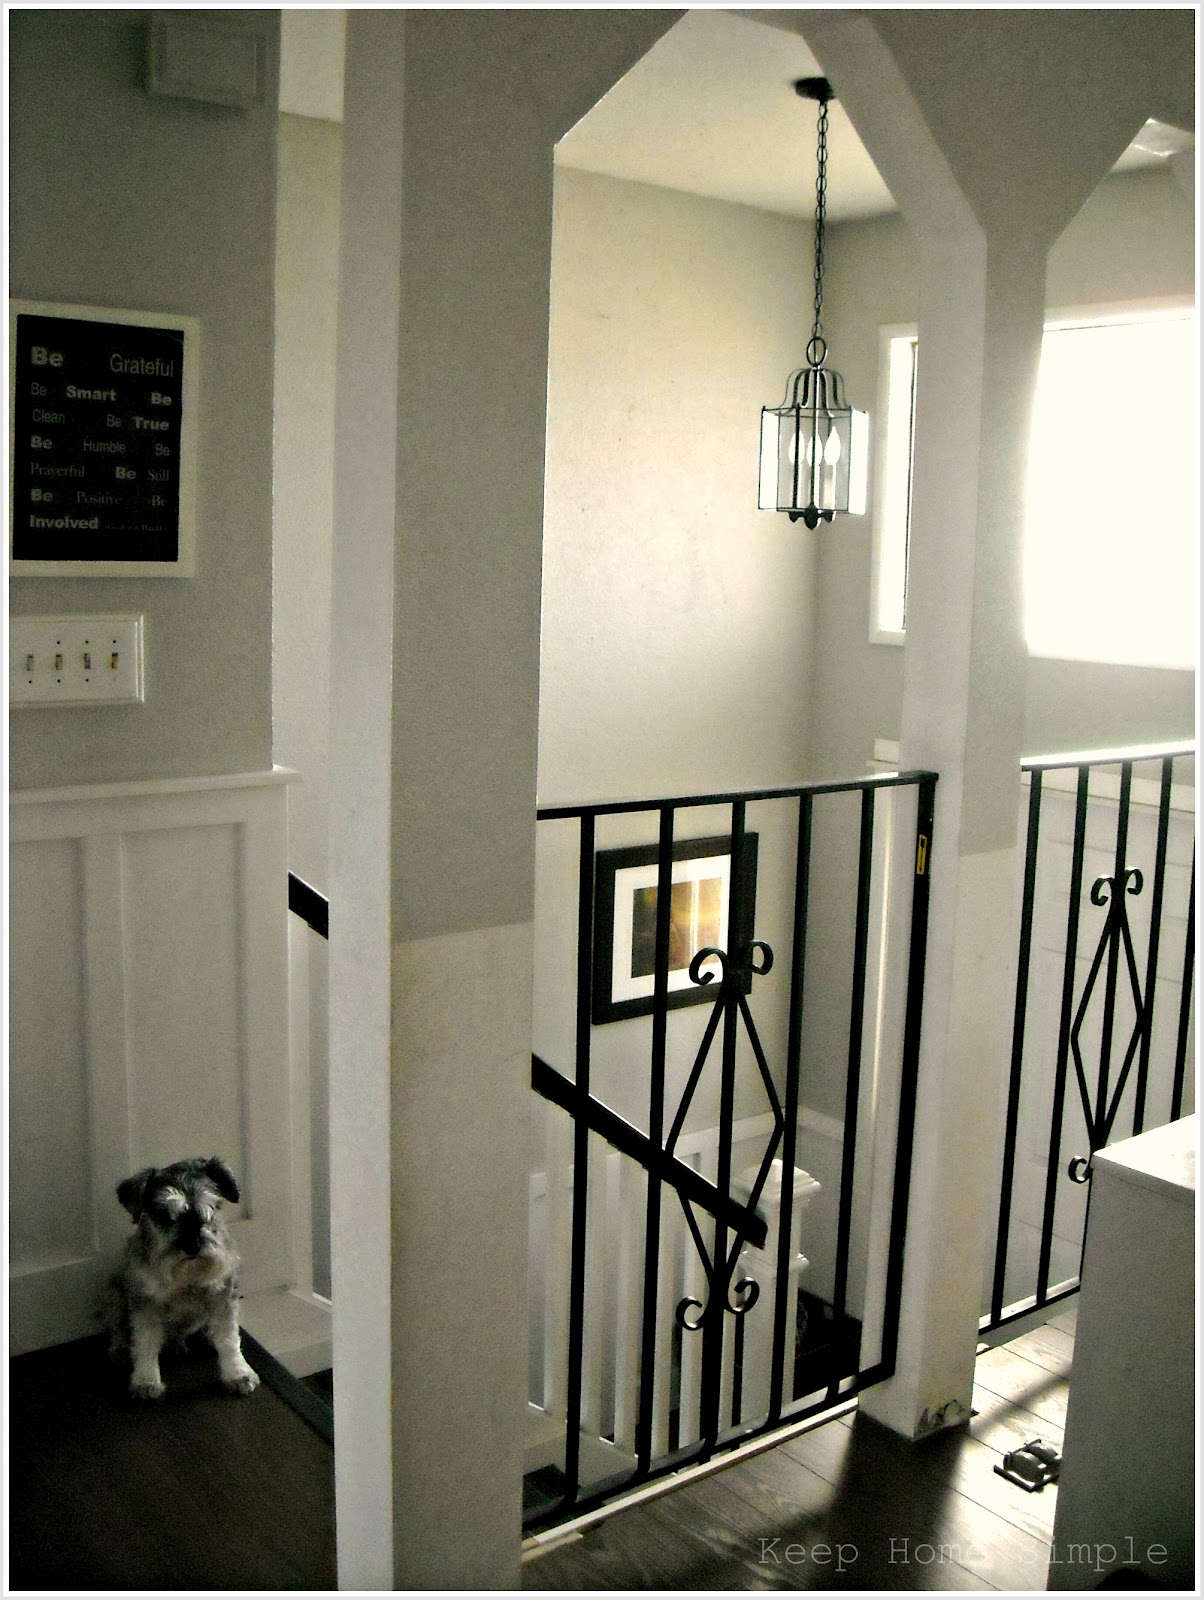 Keep home simple new entry light for Bi level foyer ideas